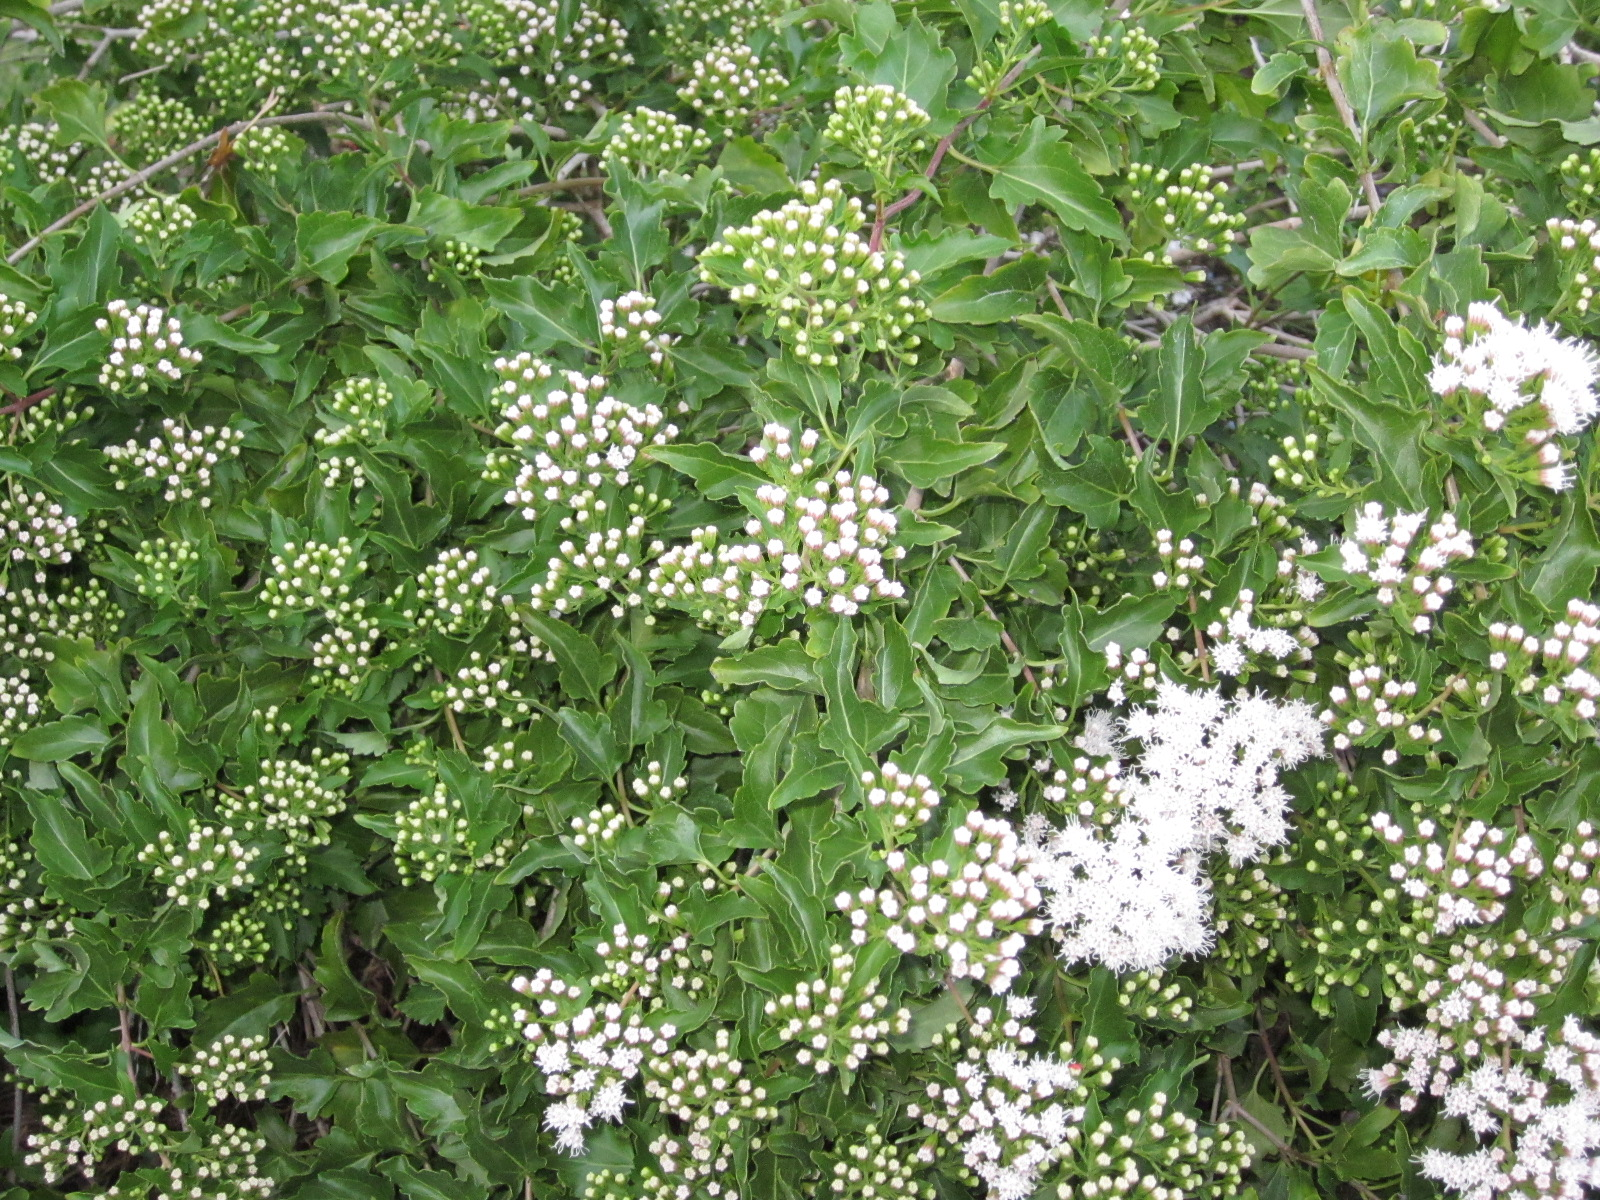 Lisa bonassins garden whats blooming now white mist flower 10 the white mist flower is starting to open it is a fall bloomer it is a huge favorite of bees this plant dies to the ground in the winter mightylinksfo